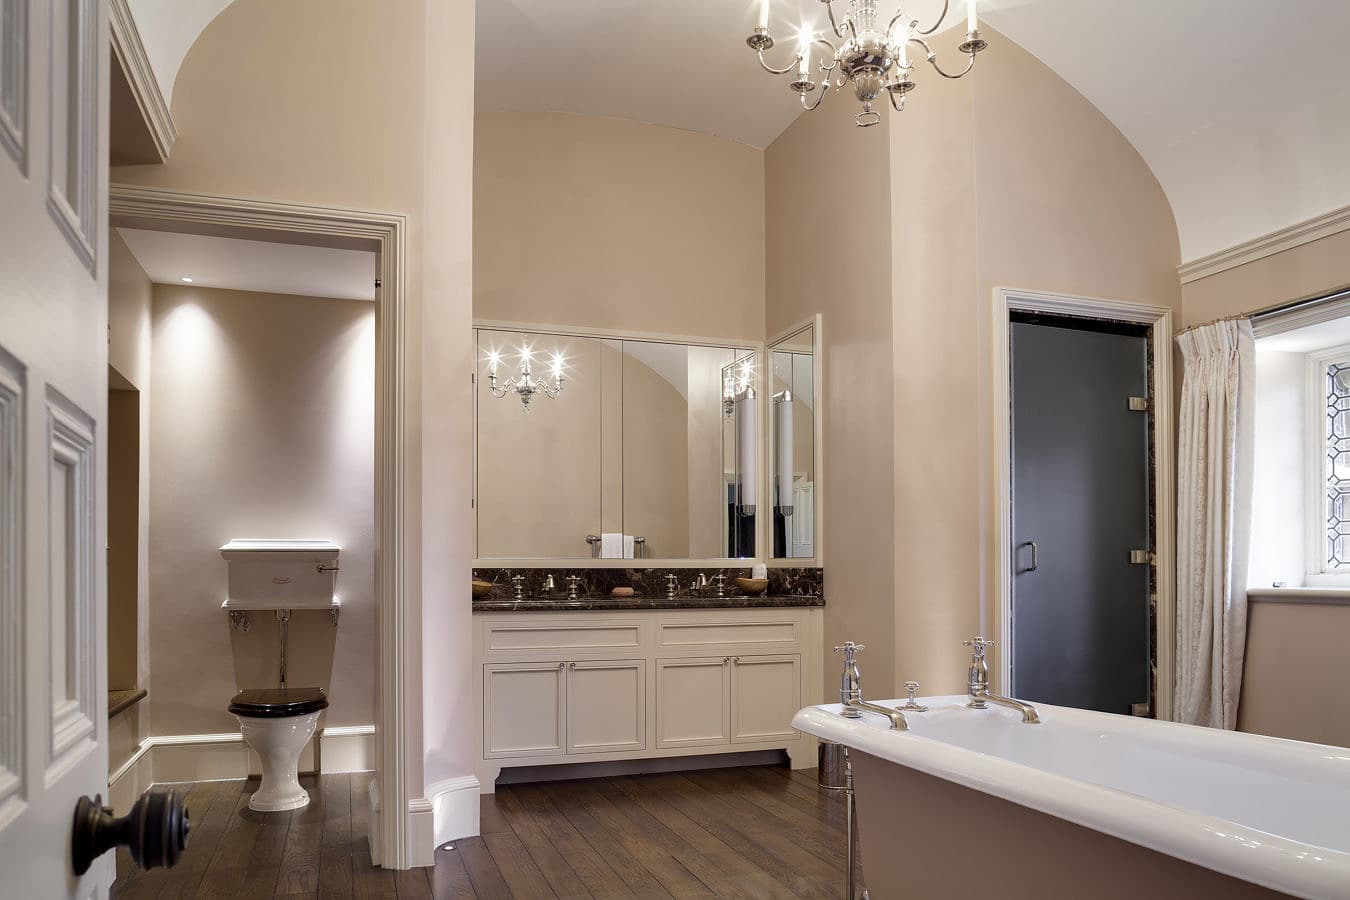 Guest-Bathroom-0002-1350x900.jpg